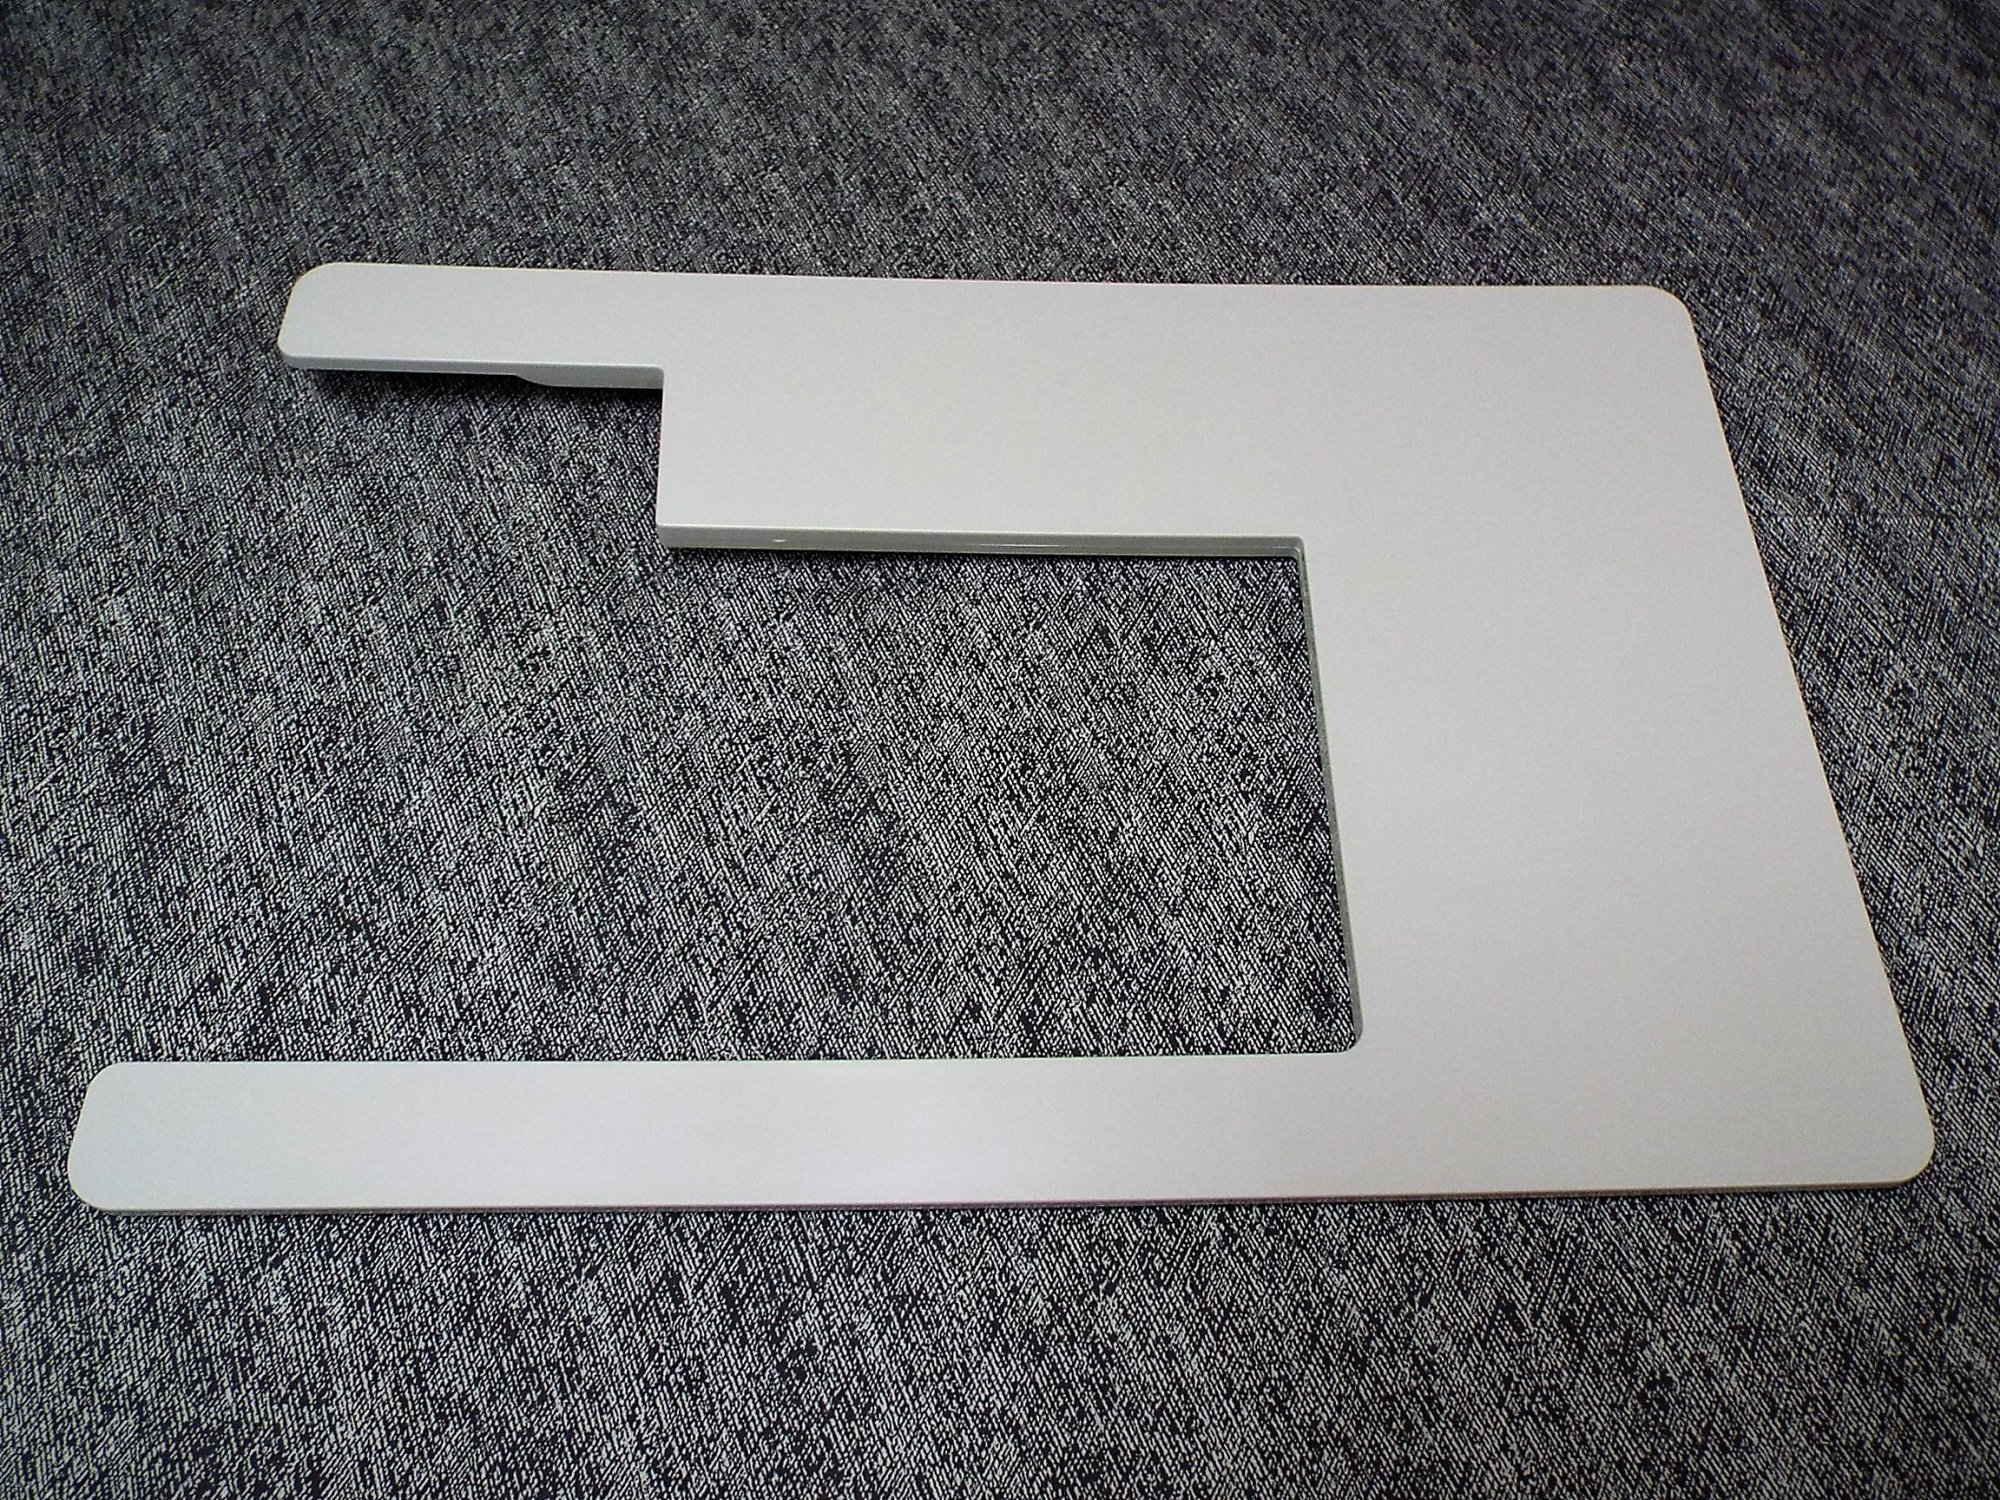 Janome Insert Plate C